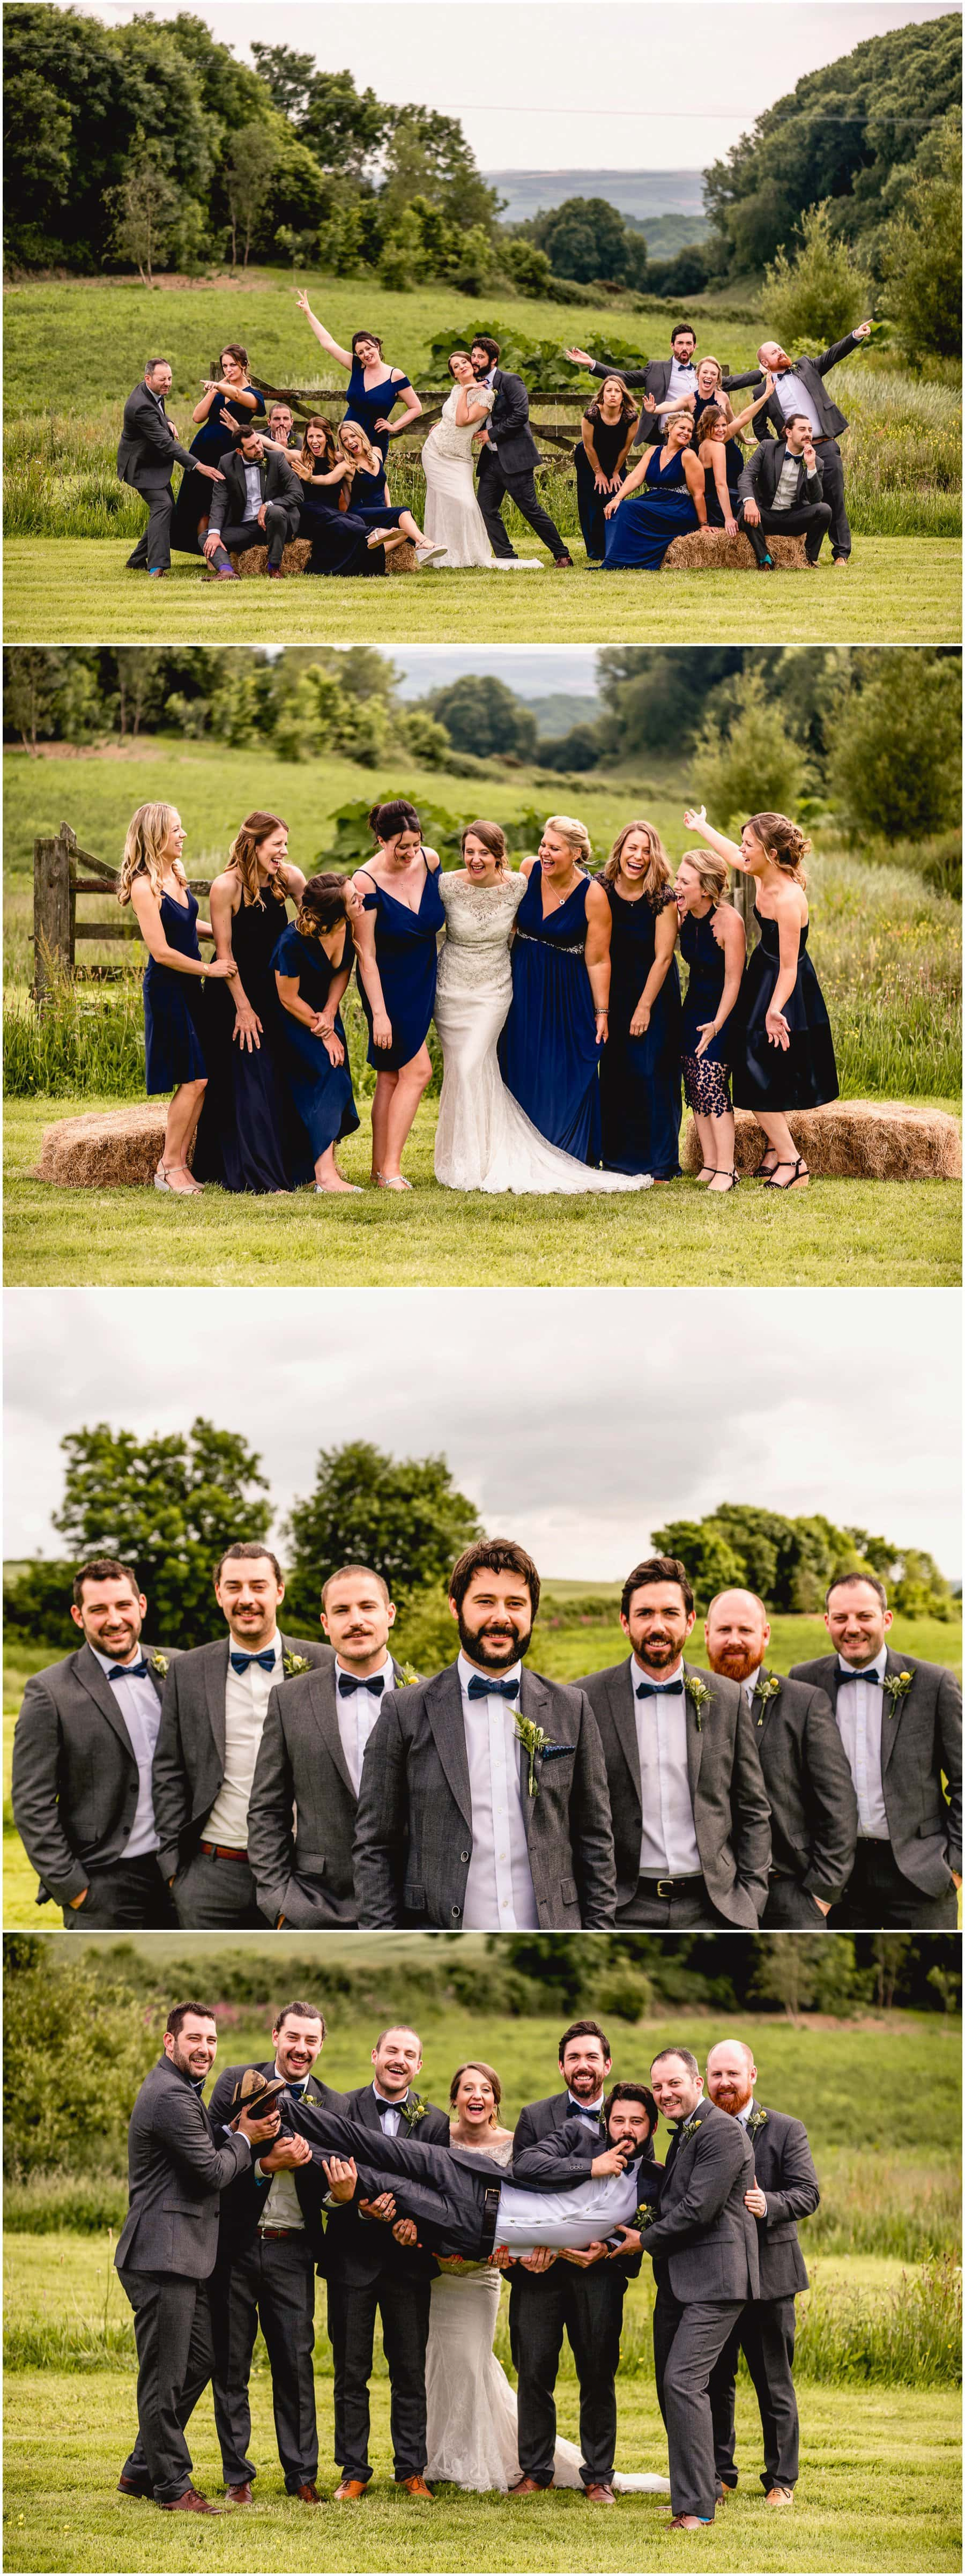 The bridal party, bridesmaids in blue and ushers and groomsmen in dinner jackets and bowtie celebrate at Ash Barton Estate in Devon.